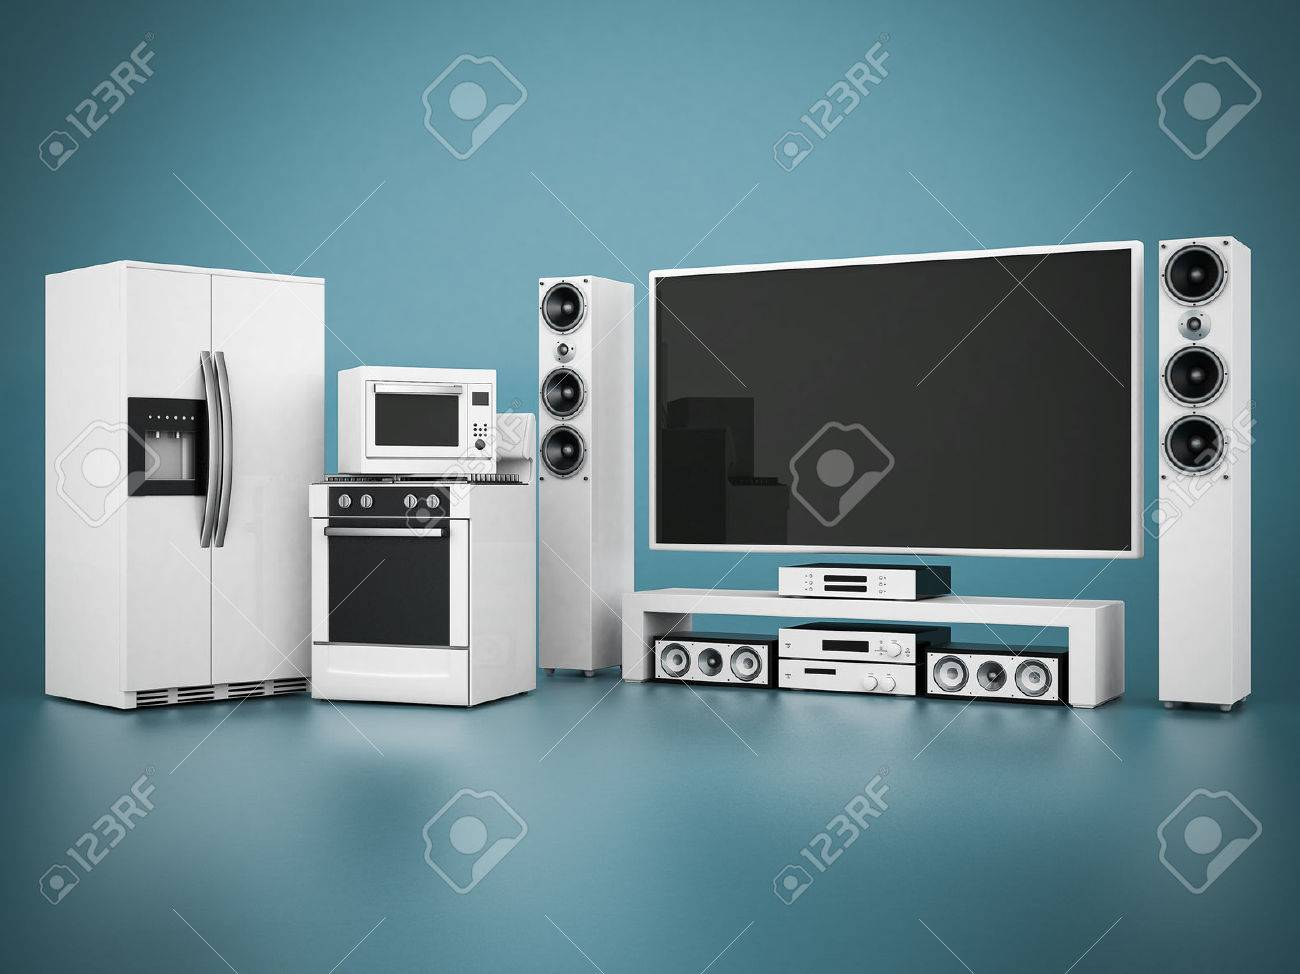 picture of household appliances on a blue background - 33255477